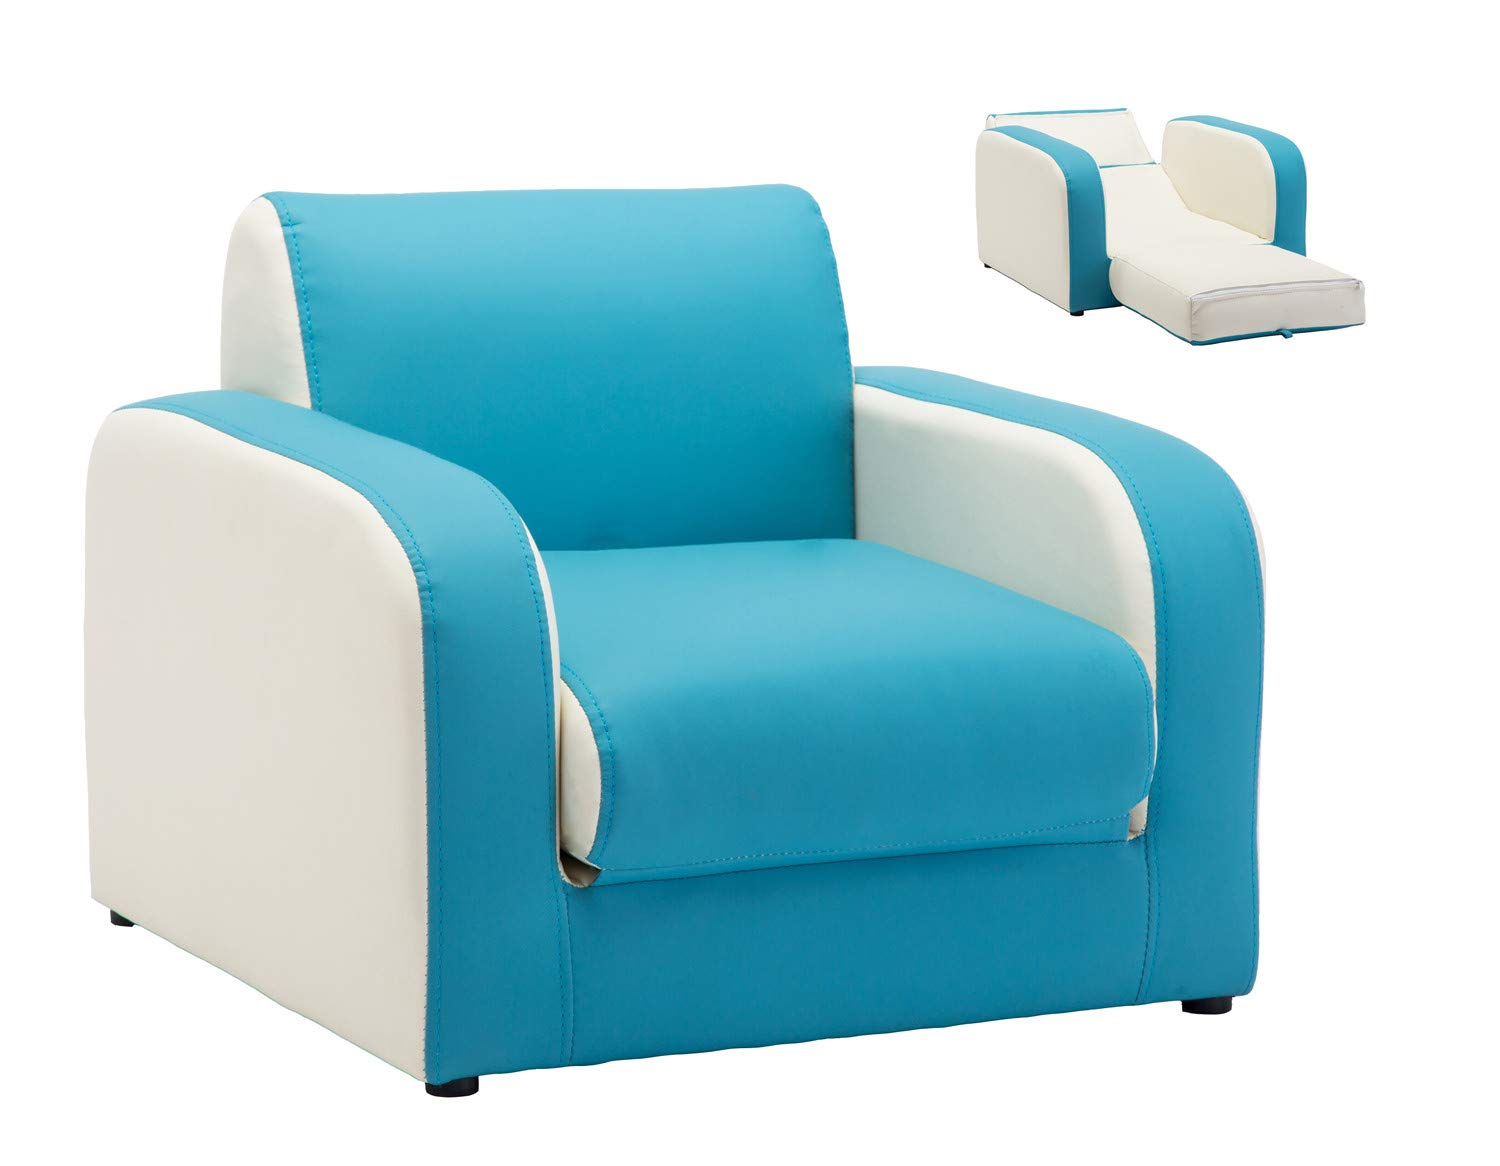 Panama Children Multi-Functional Upholstered Sofa Kids Chair/PU Leather Bright Color (Blue) Haoyue Furniture